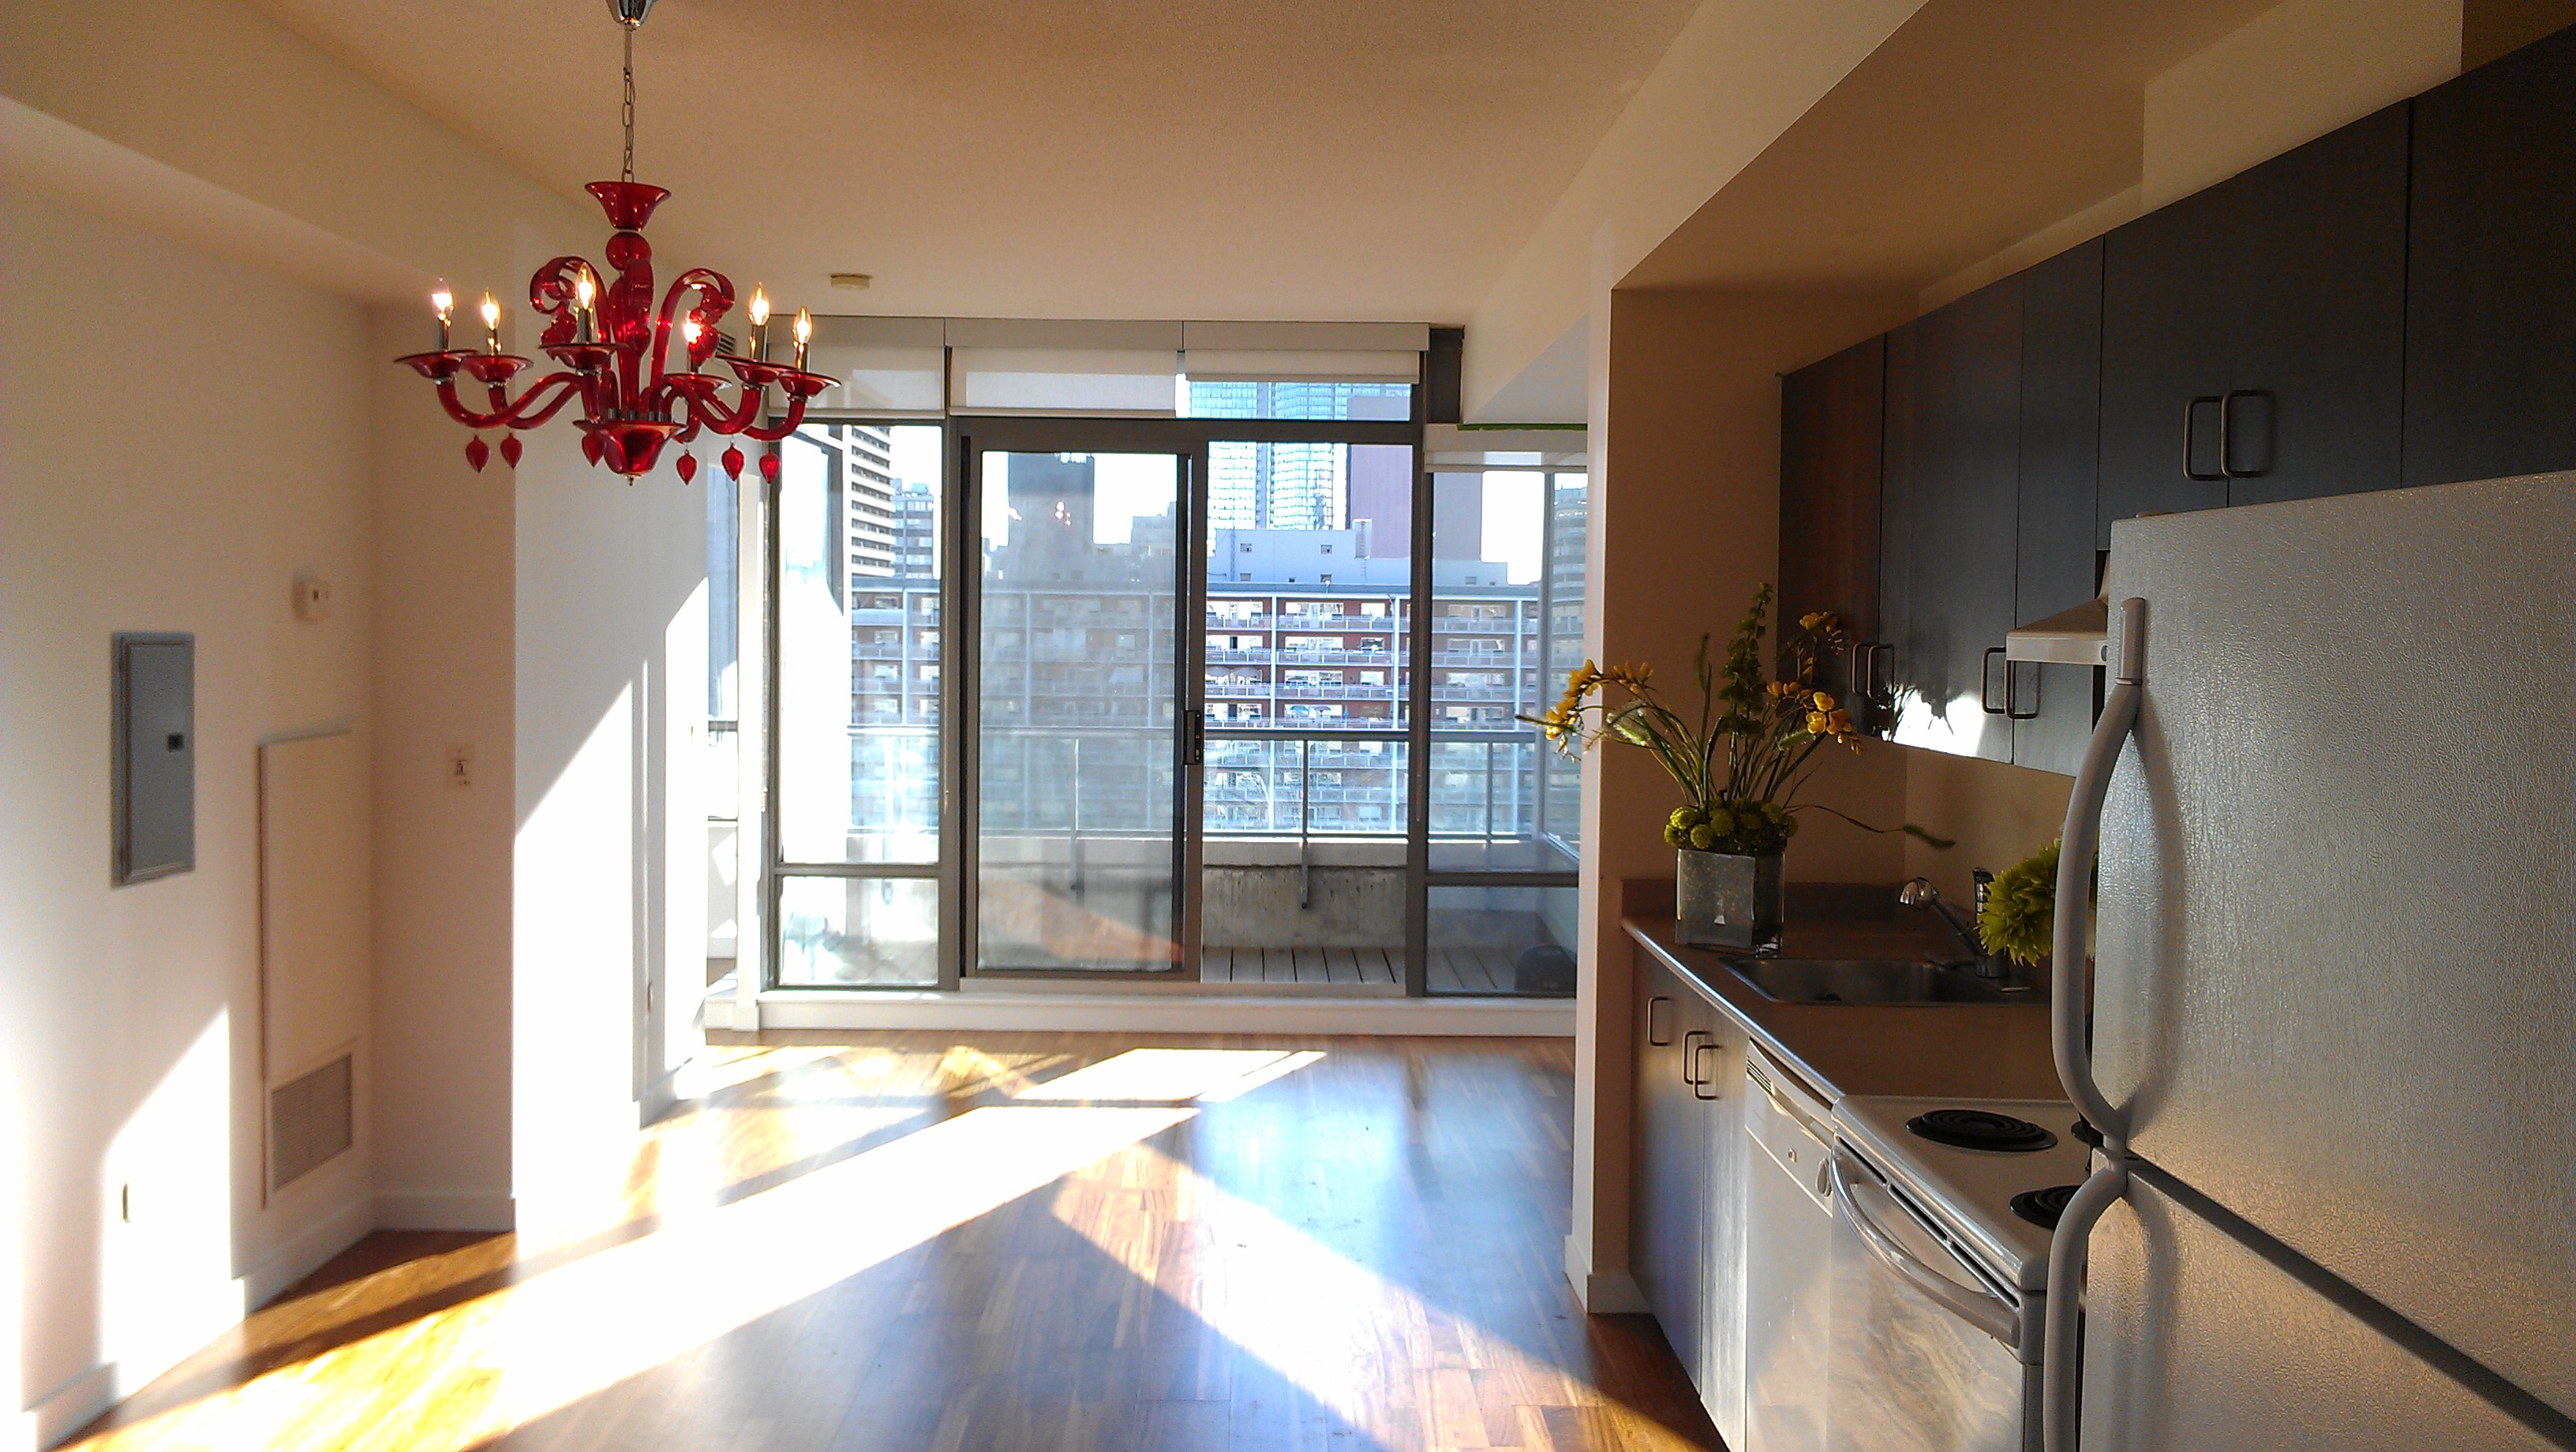 ONE BEDROOM FOR RENT - 281 MUTUAL ST